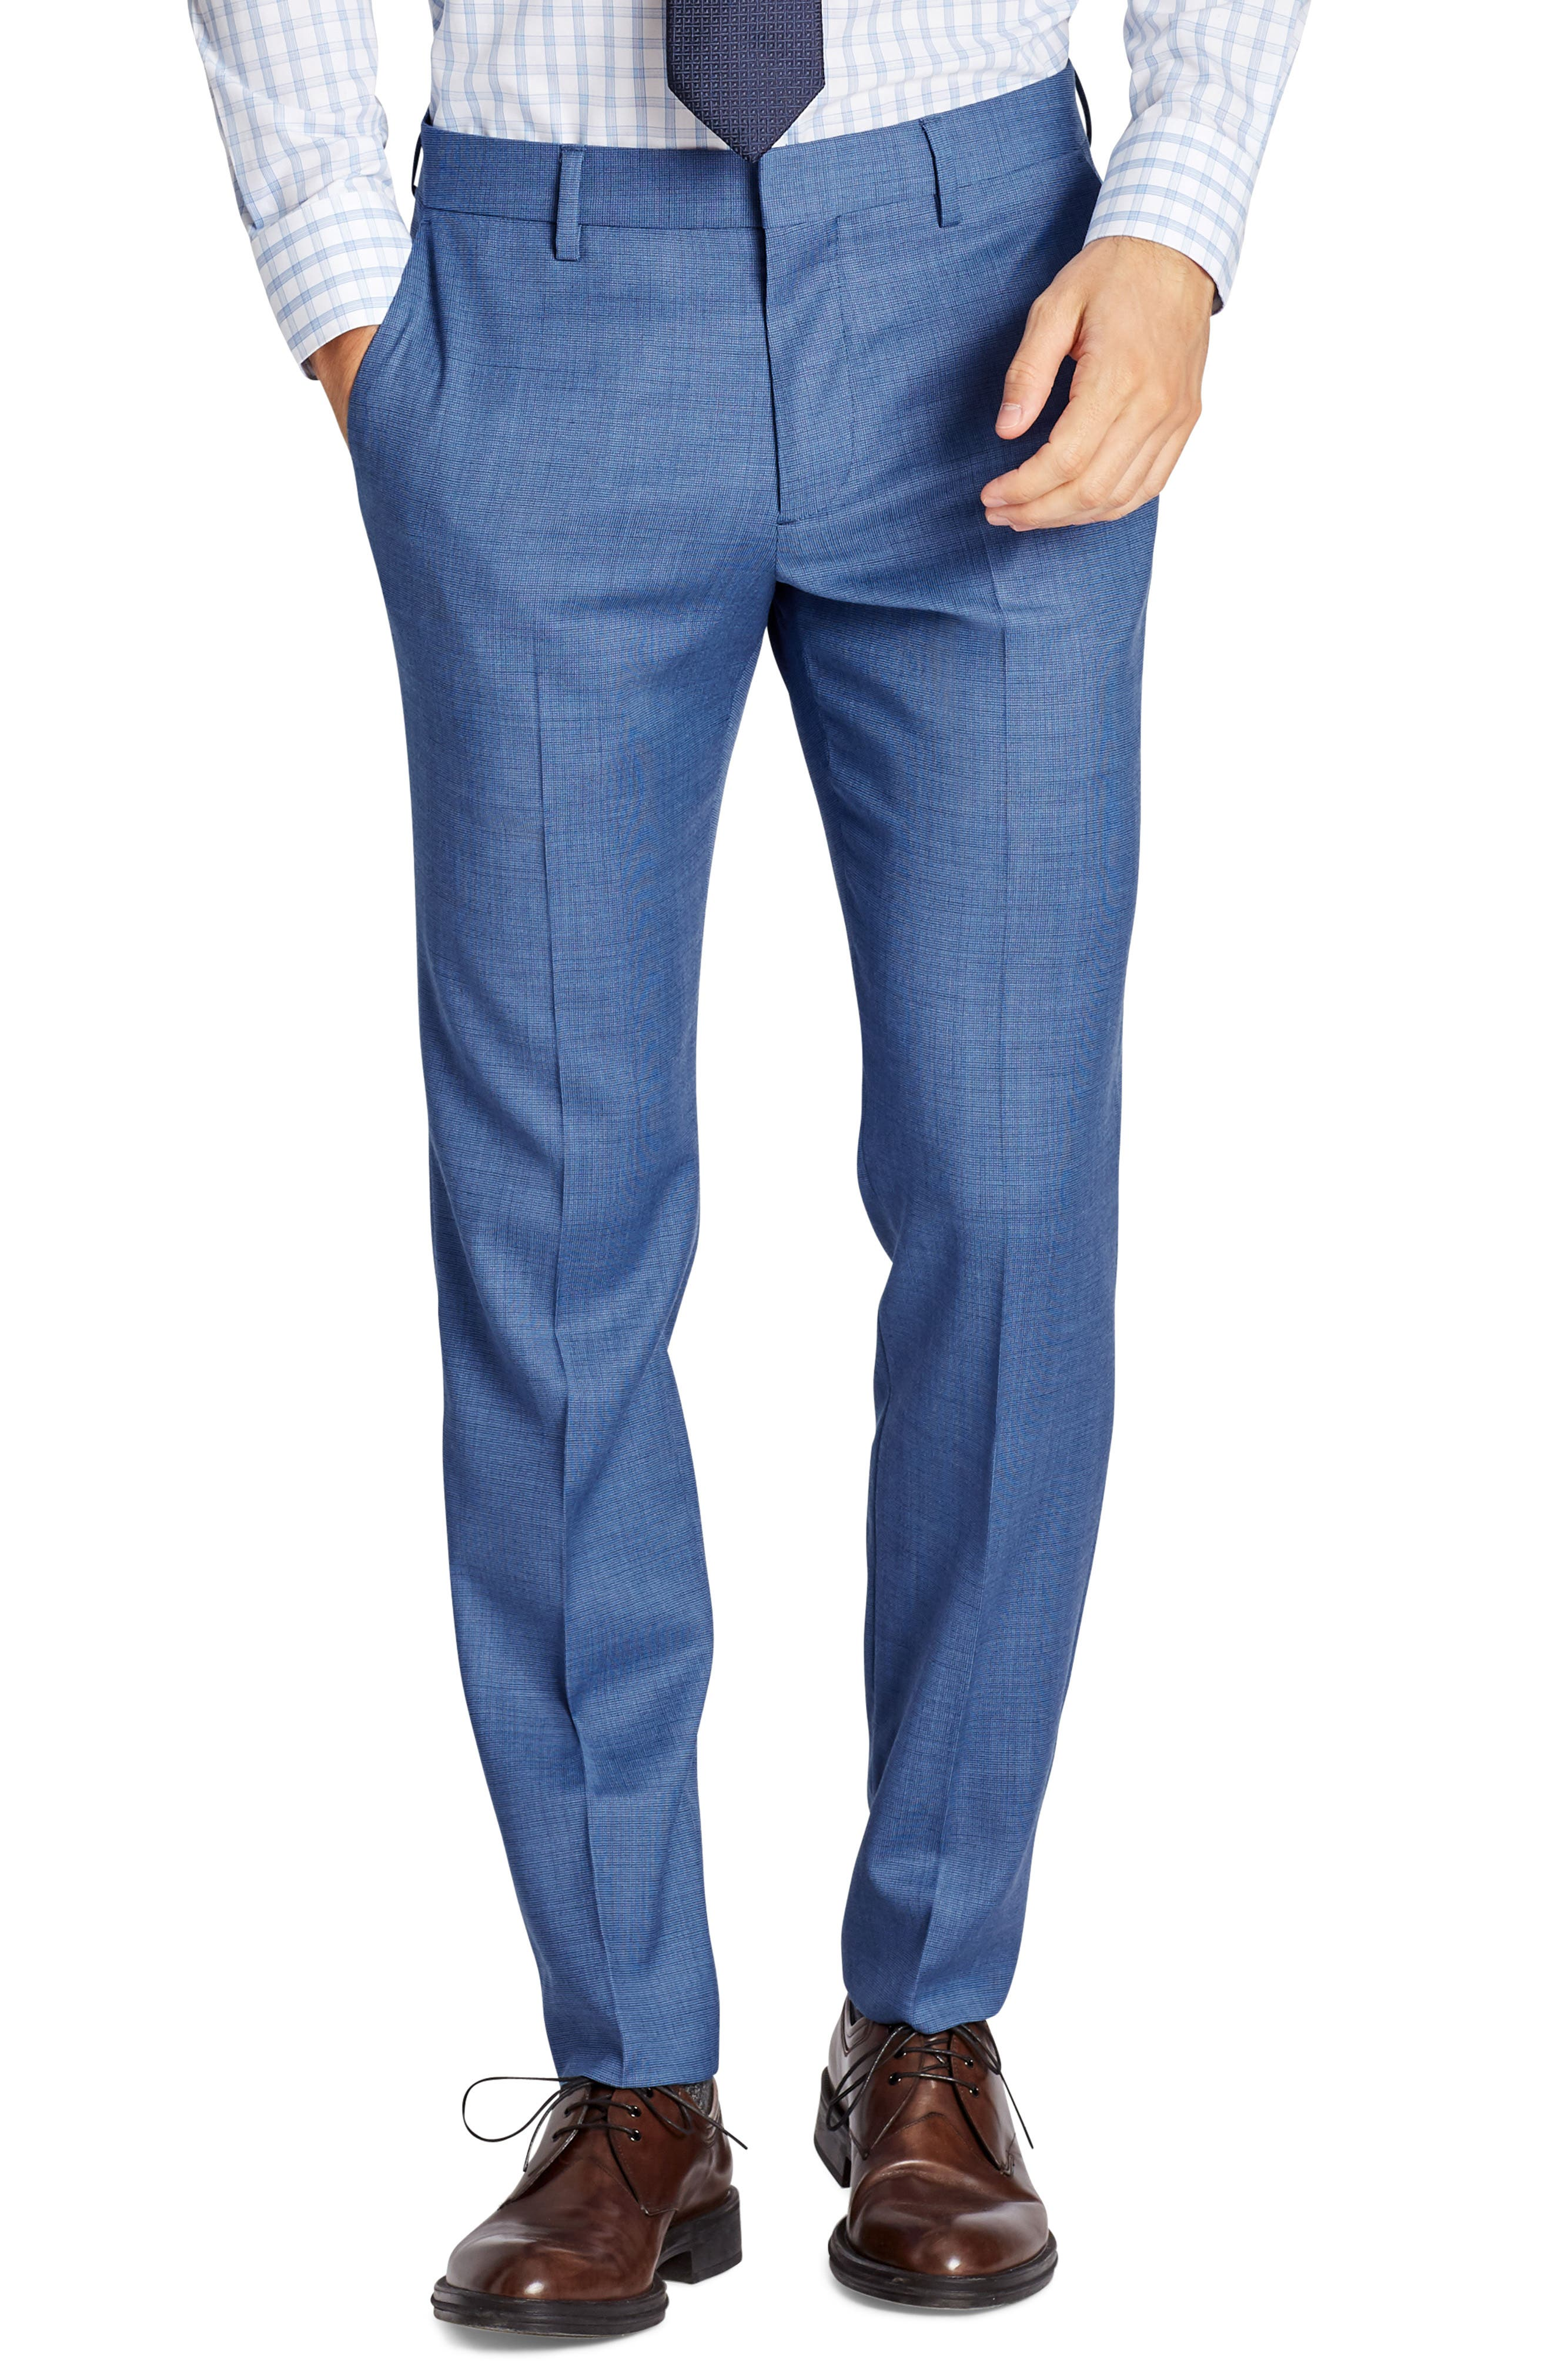 Jetsetter Flat Front Solid Stretch Wool Trousers,                             Main thumbnail 1, color,                             BRIGHTER BLUE